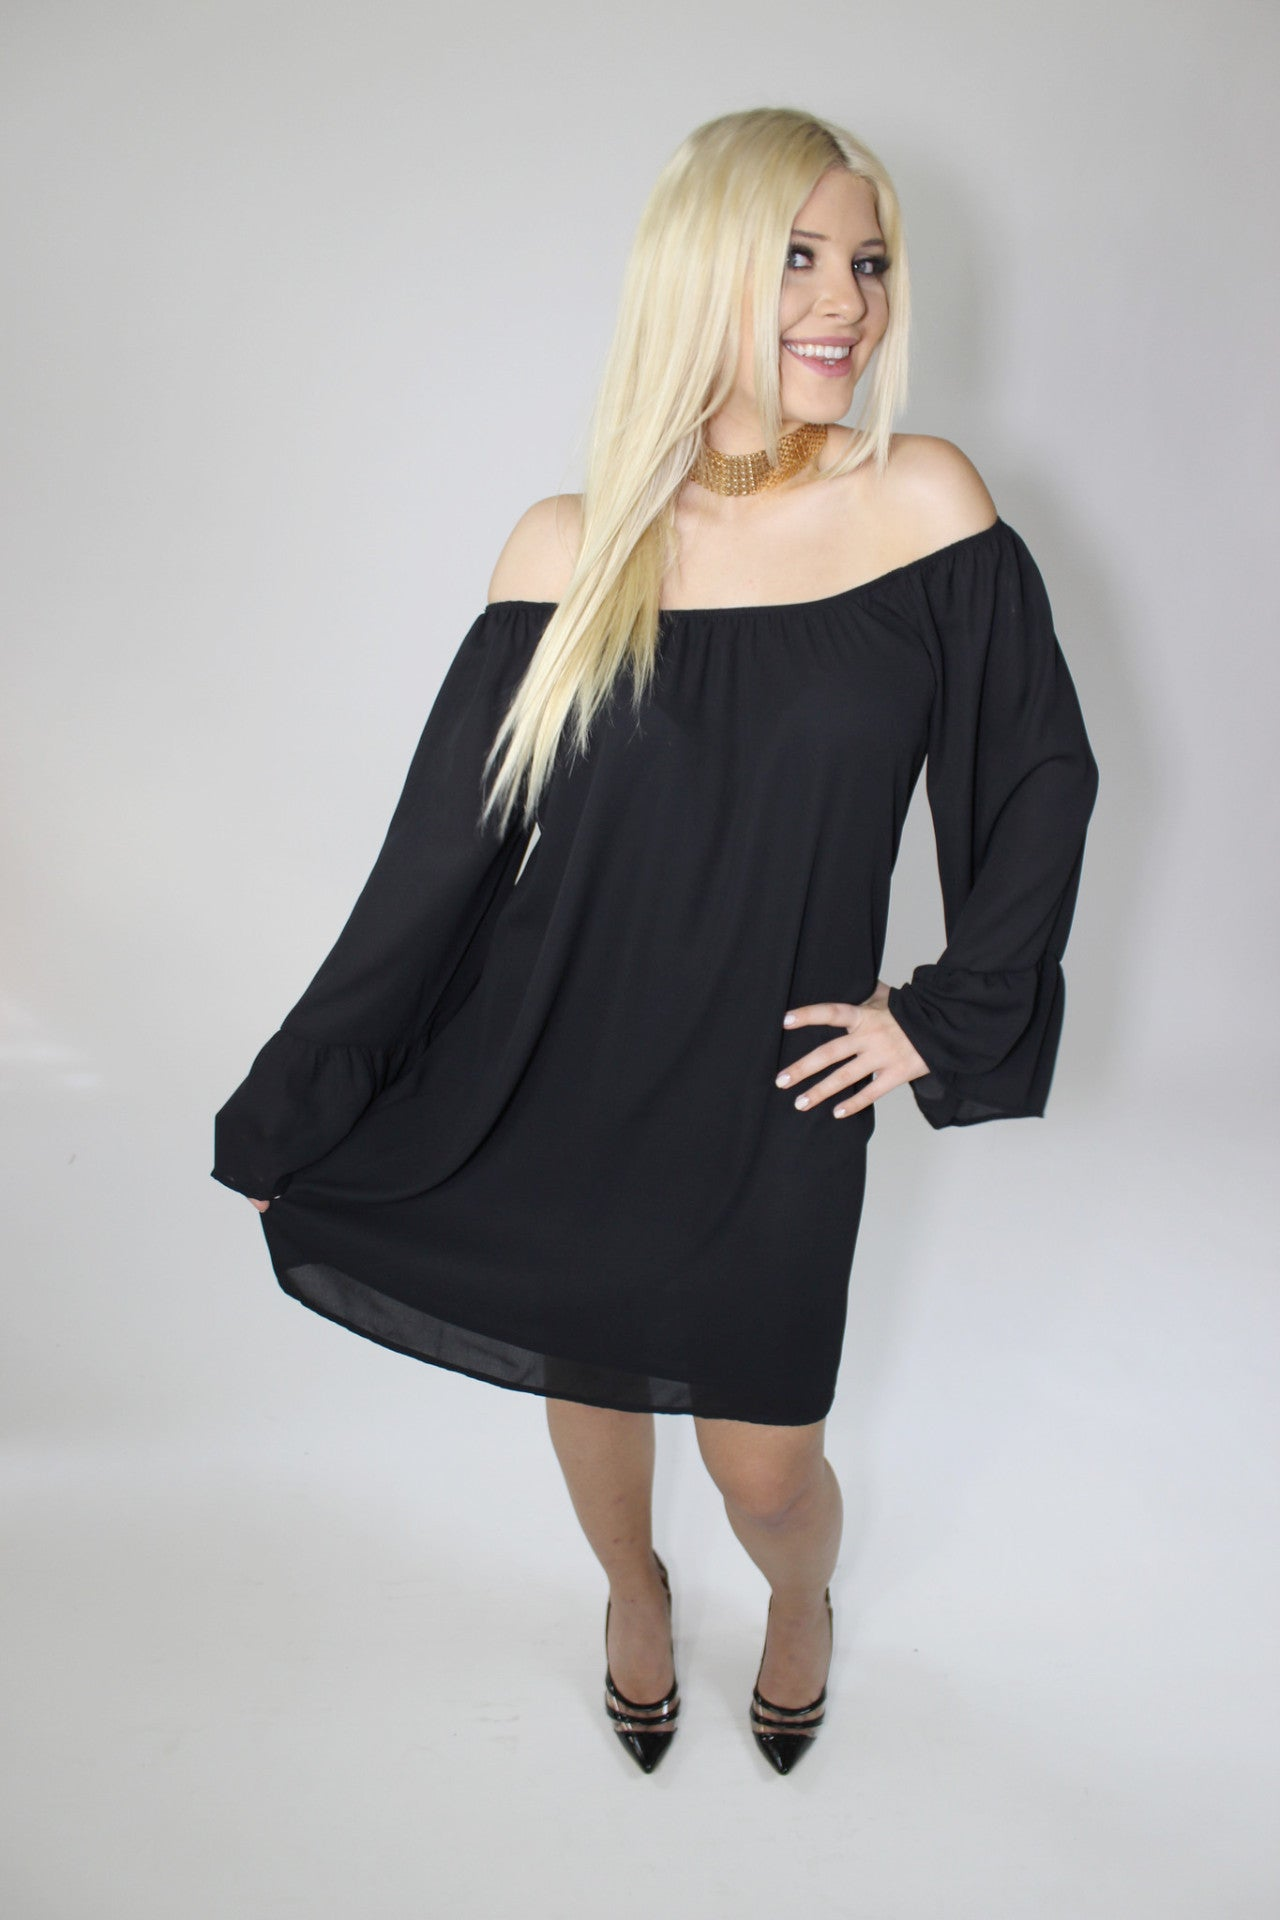 The One Off the Shoulder Shift Dress - Mod Owl